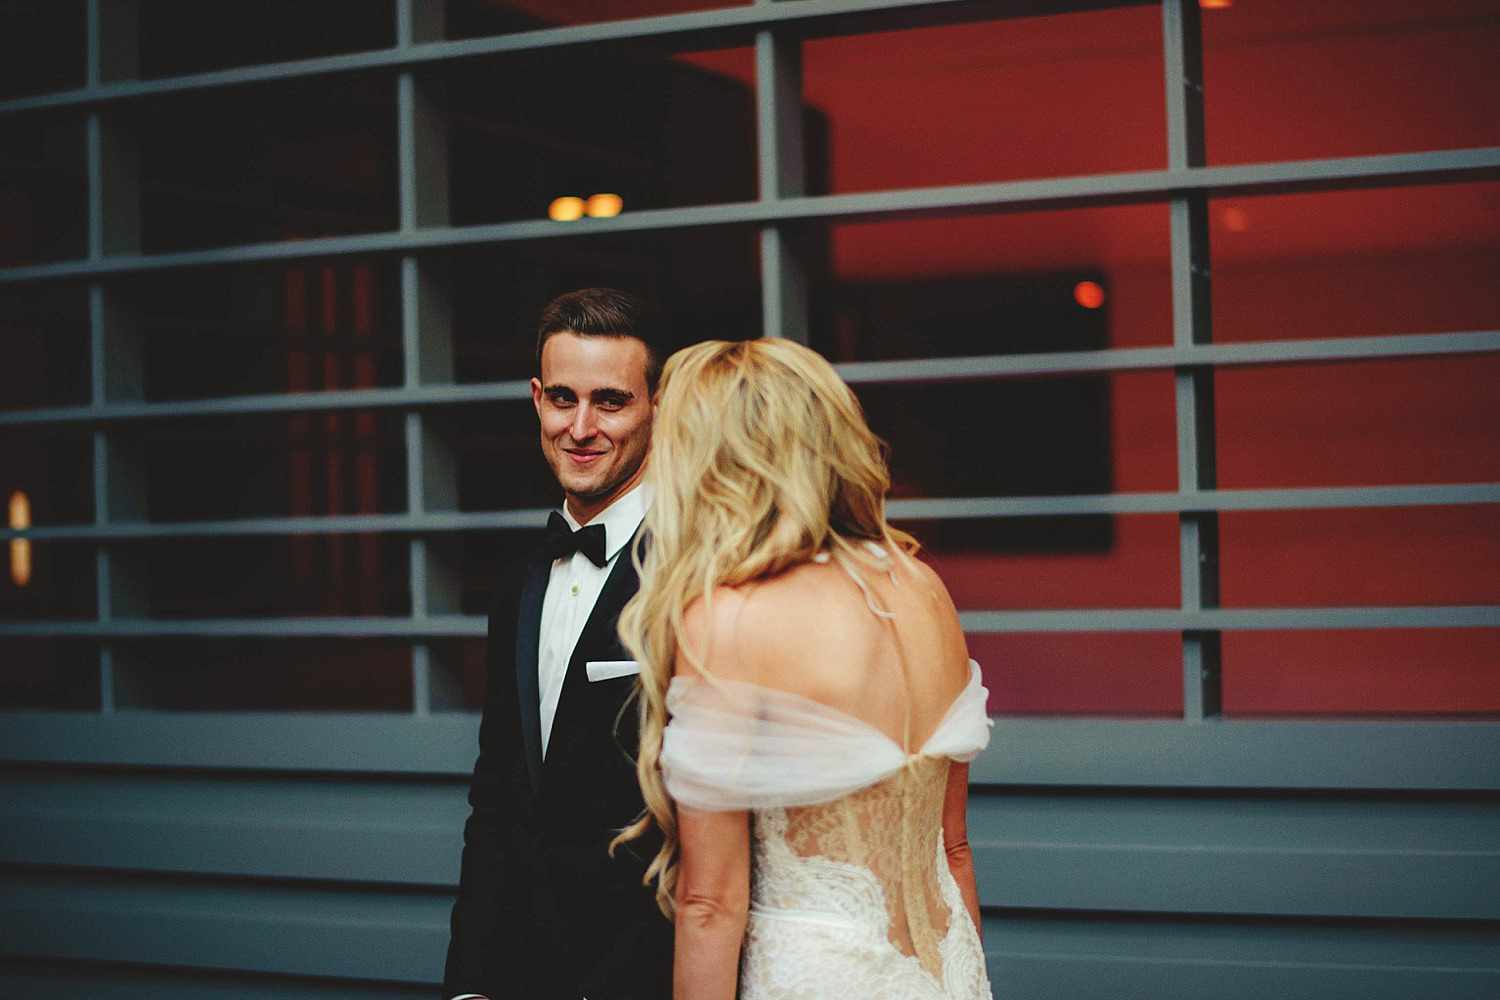 romantic-w-fort-lauderdale-wedding: groom seeing bride for first